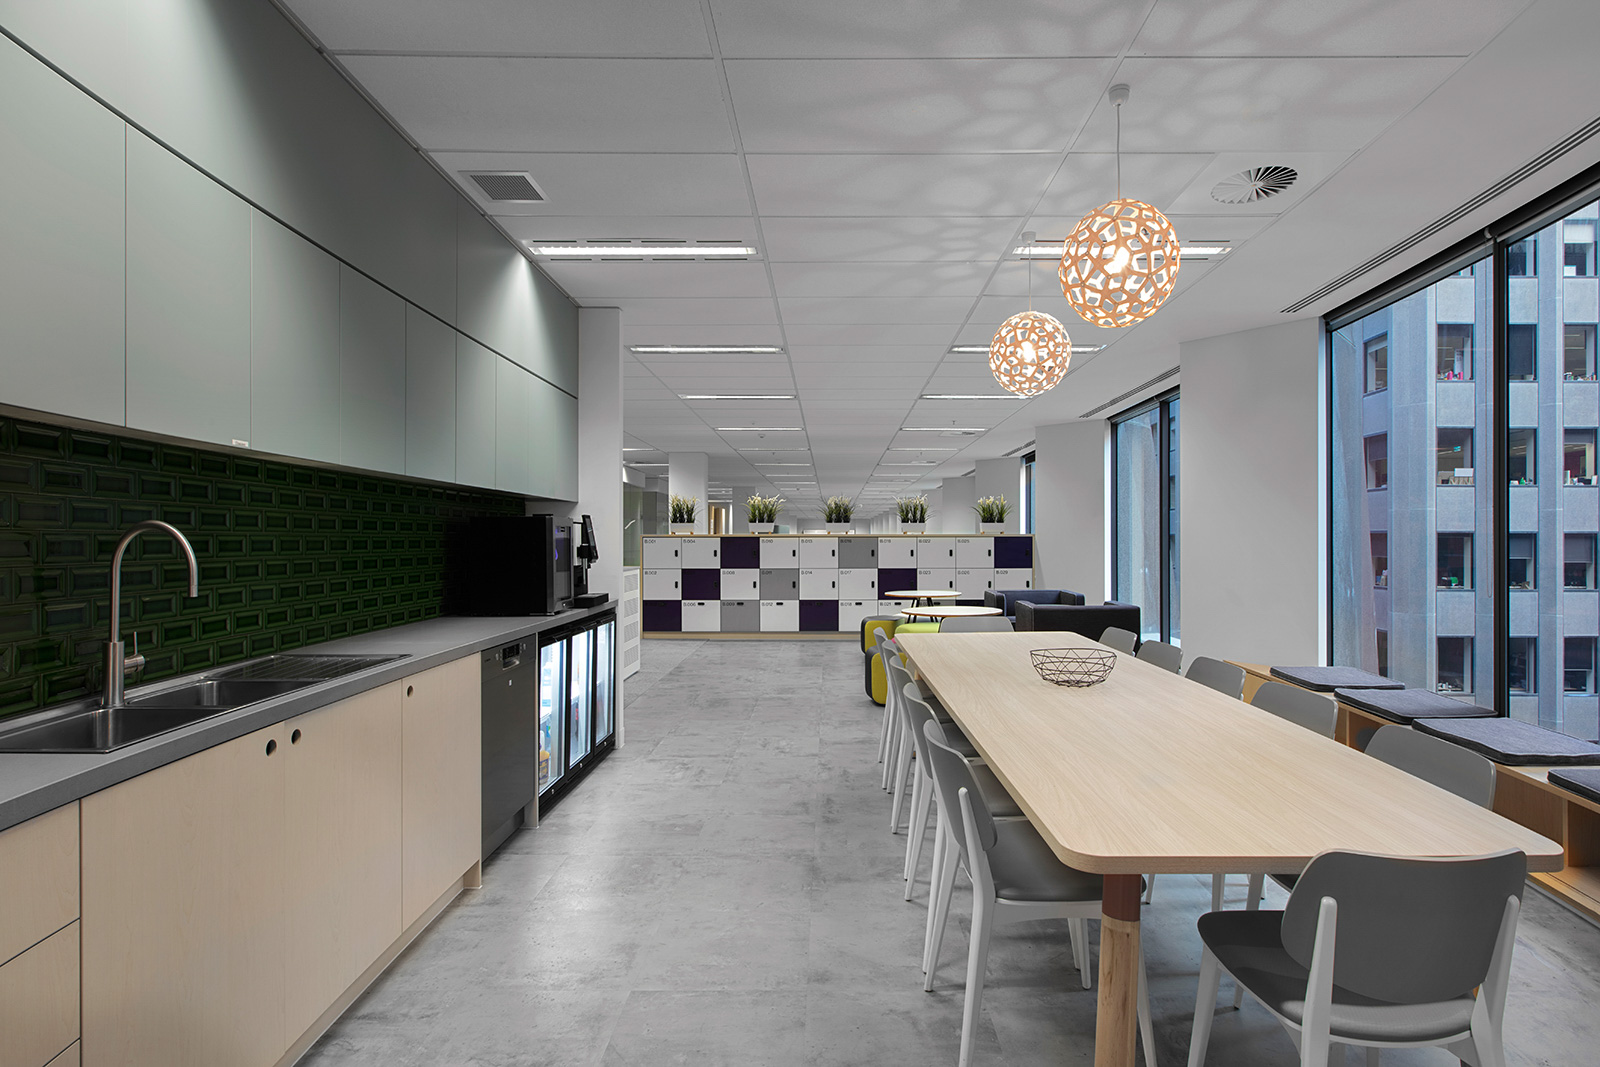 Custom commercial joinery and fit out by ISM Interiors for the Willis Towers Watson office refurbishment.